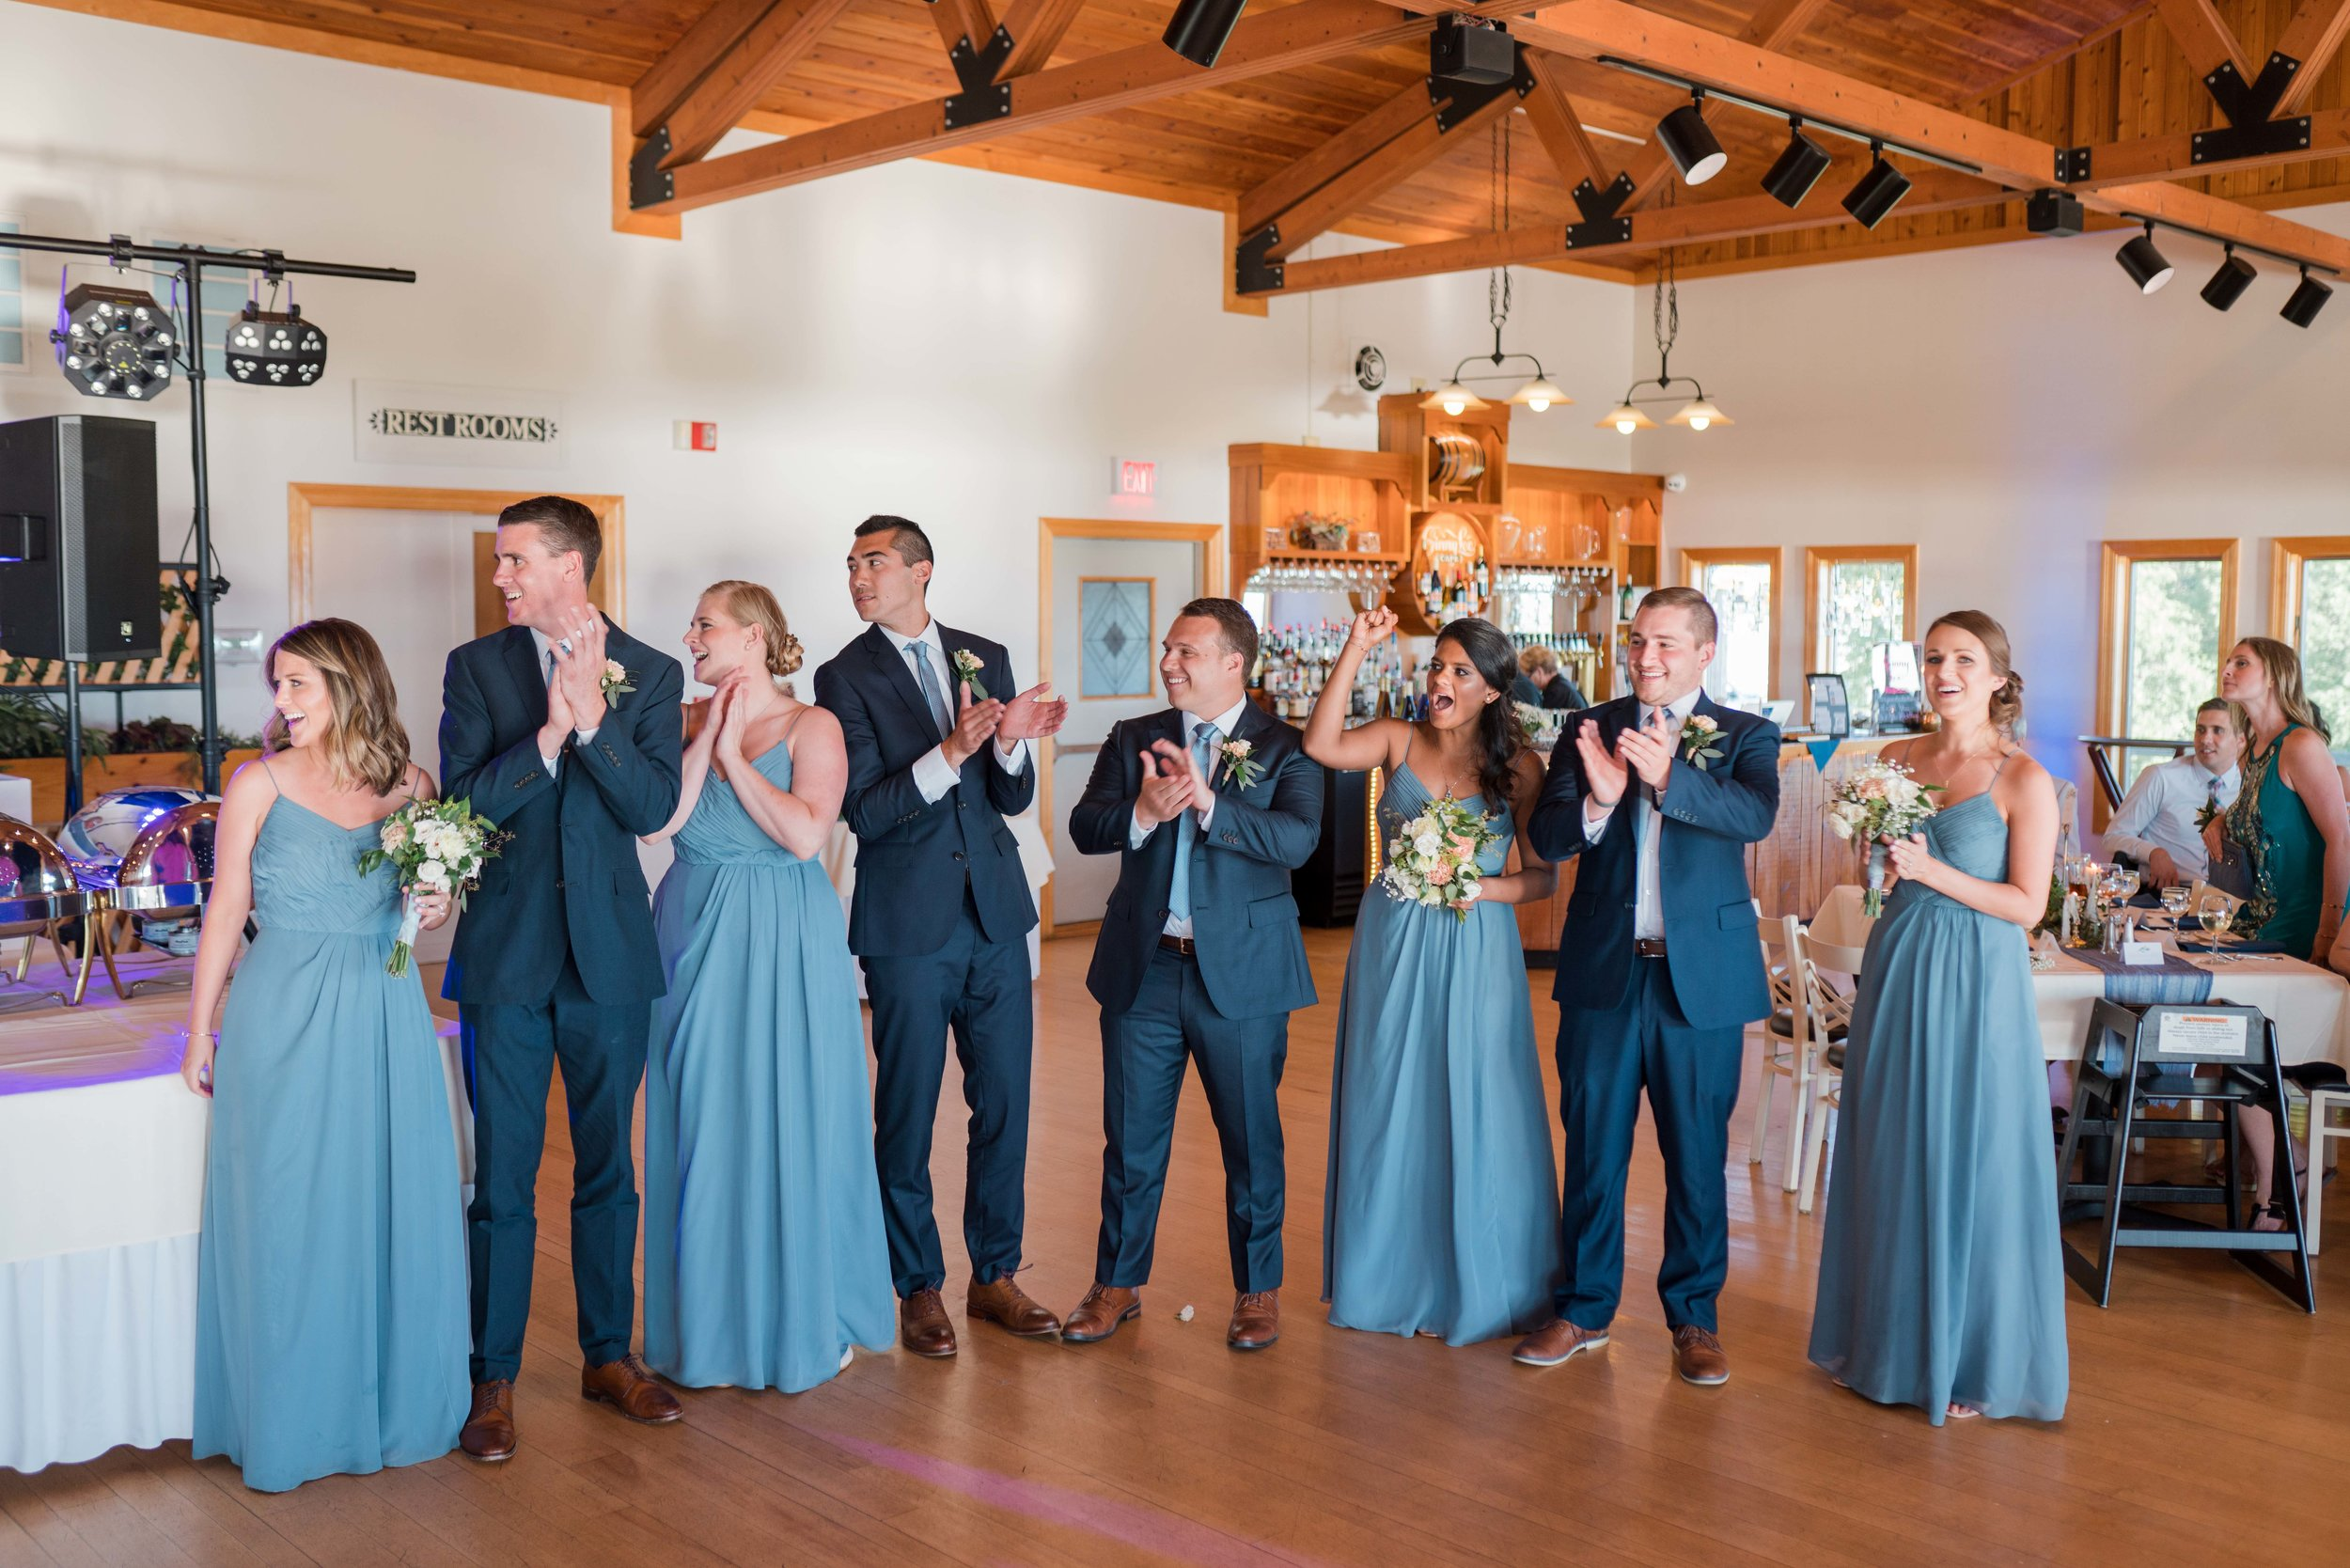 Wedding Photography at Wagner Vineyards Ginny Lee Cafe Finger Lakes by Stefan Ludwig Photography-72.jpg